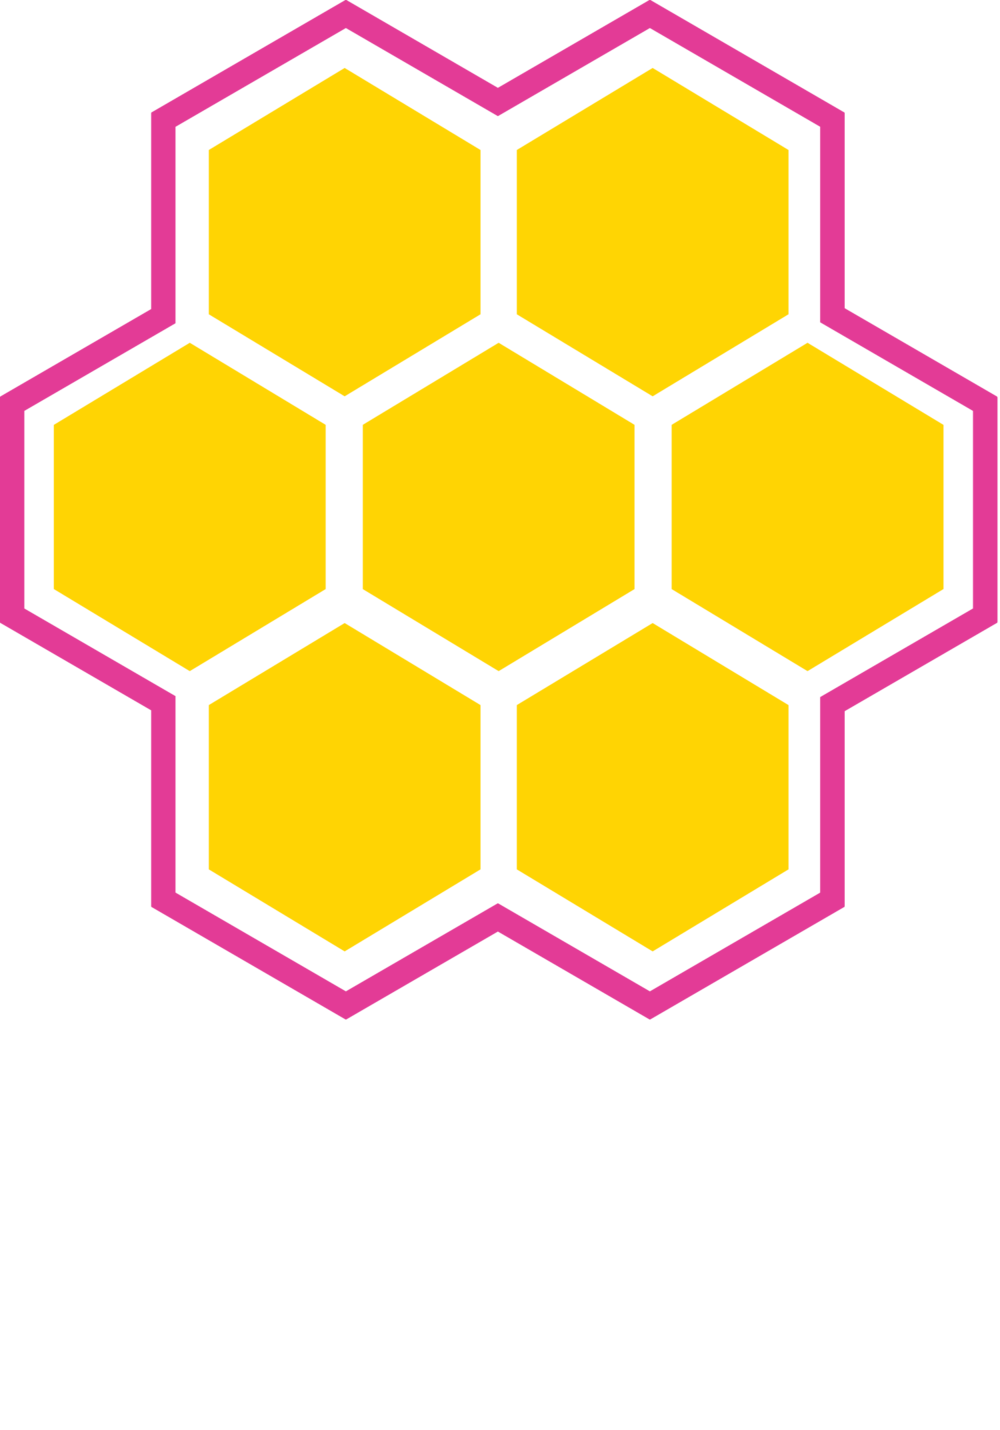 LOGO_Hive_MagentaReverse_Web.png